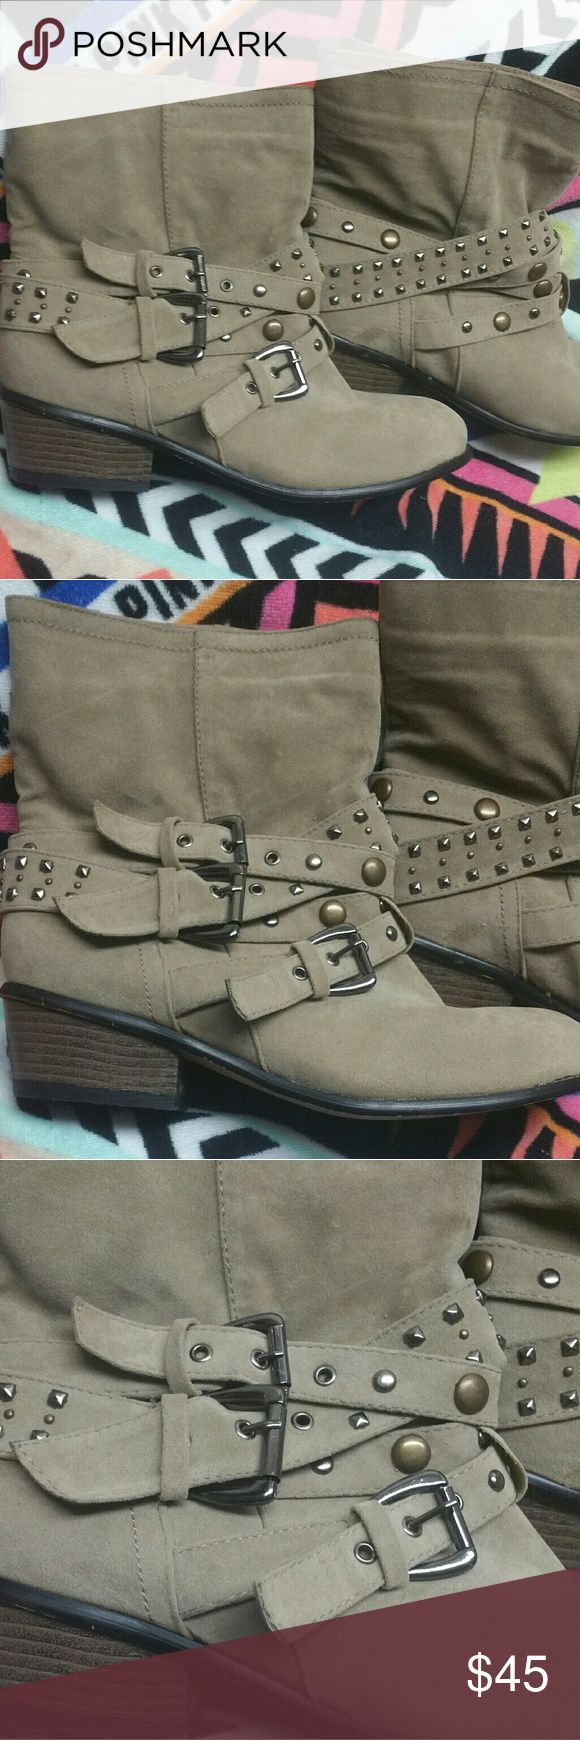 Moto tan buckled ankle boots 8/9 L Nwt Never worn. Fits 8/9 faux suede . Has a mark on side of boots. Cute! Probably will come out, didnt attempt to scrub on it yet. *not american apparel American Apparel Shoes Ankle Boots & Booties